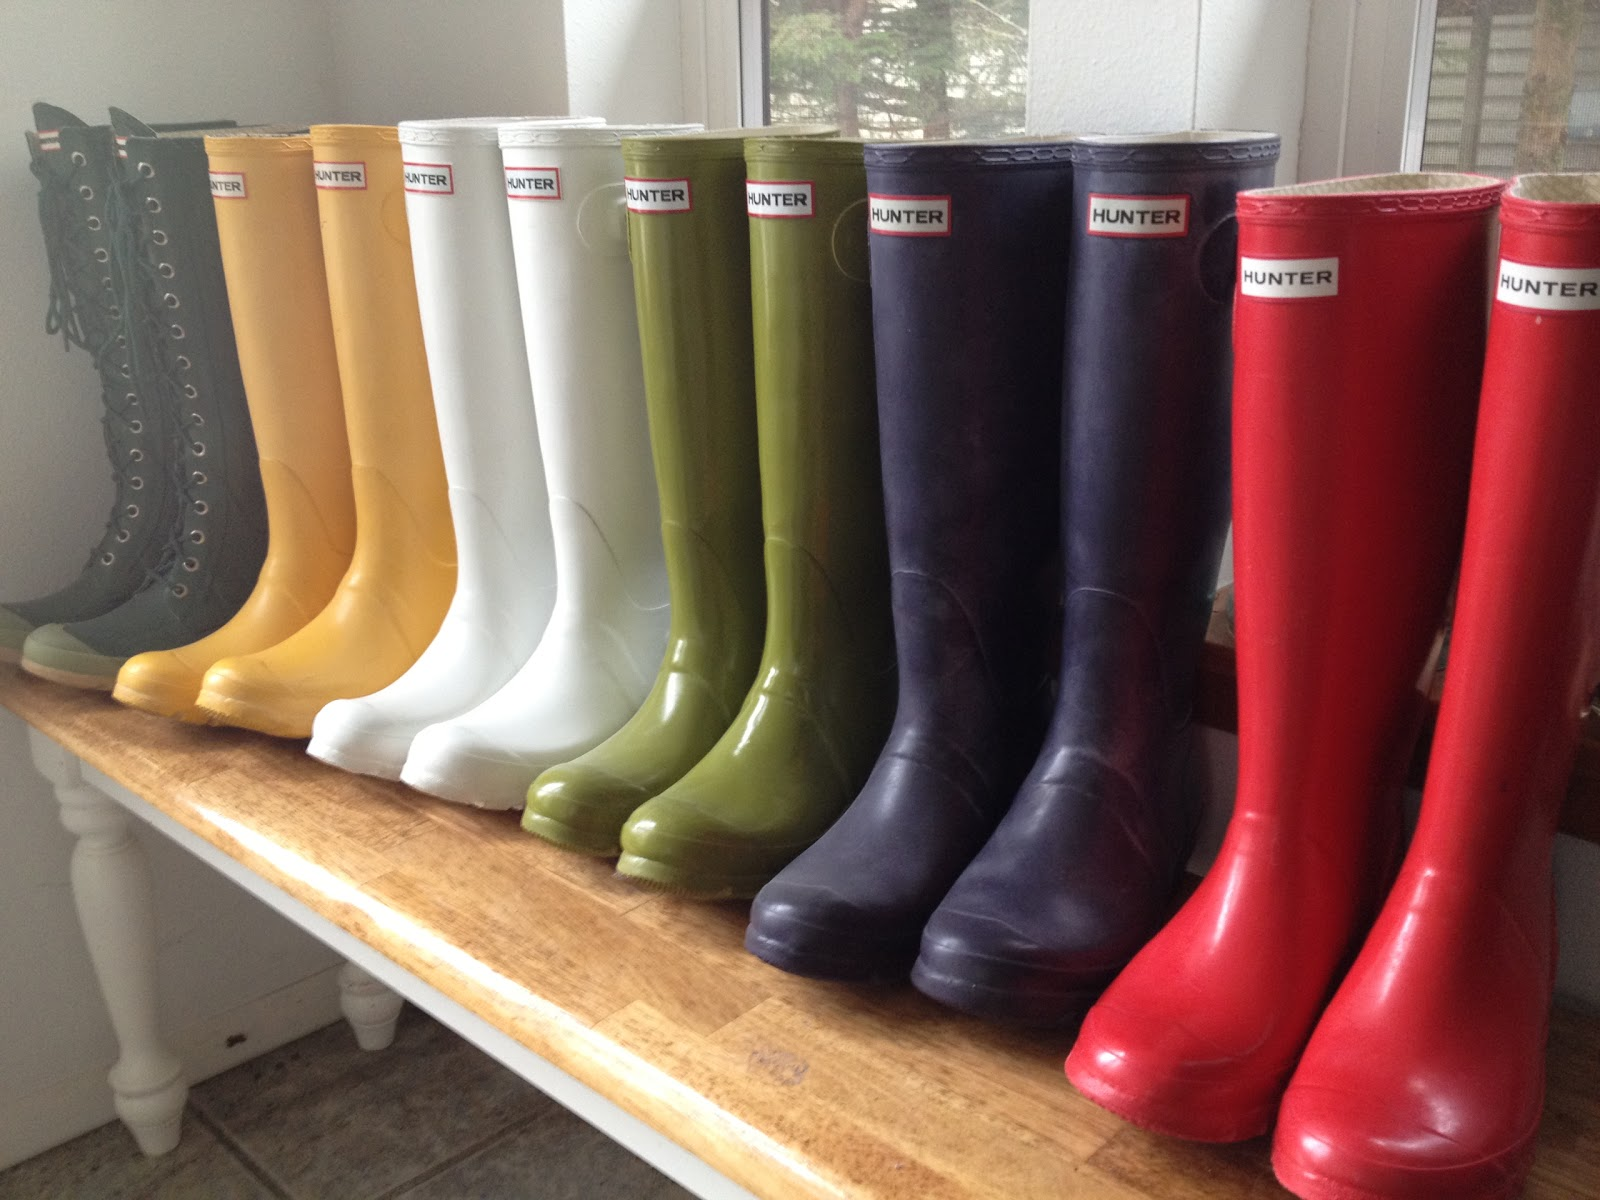 withtherain: Hunter Rain Boots What Color To Wear?